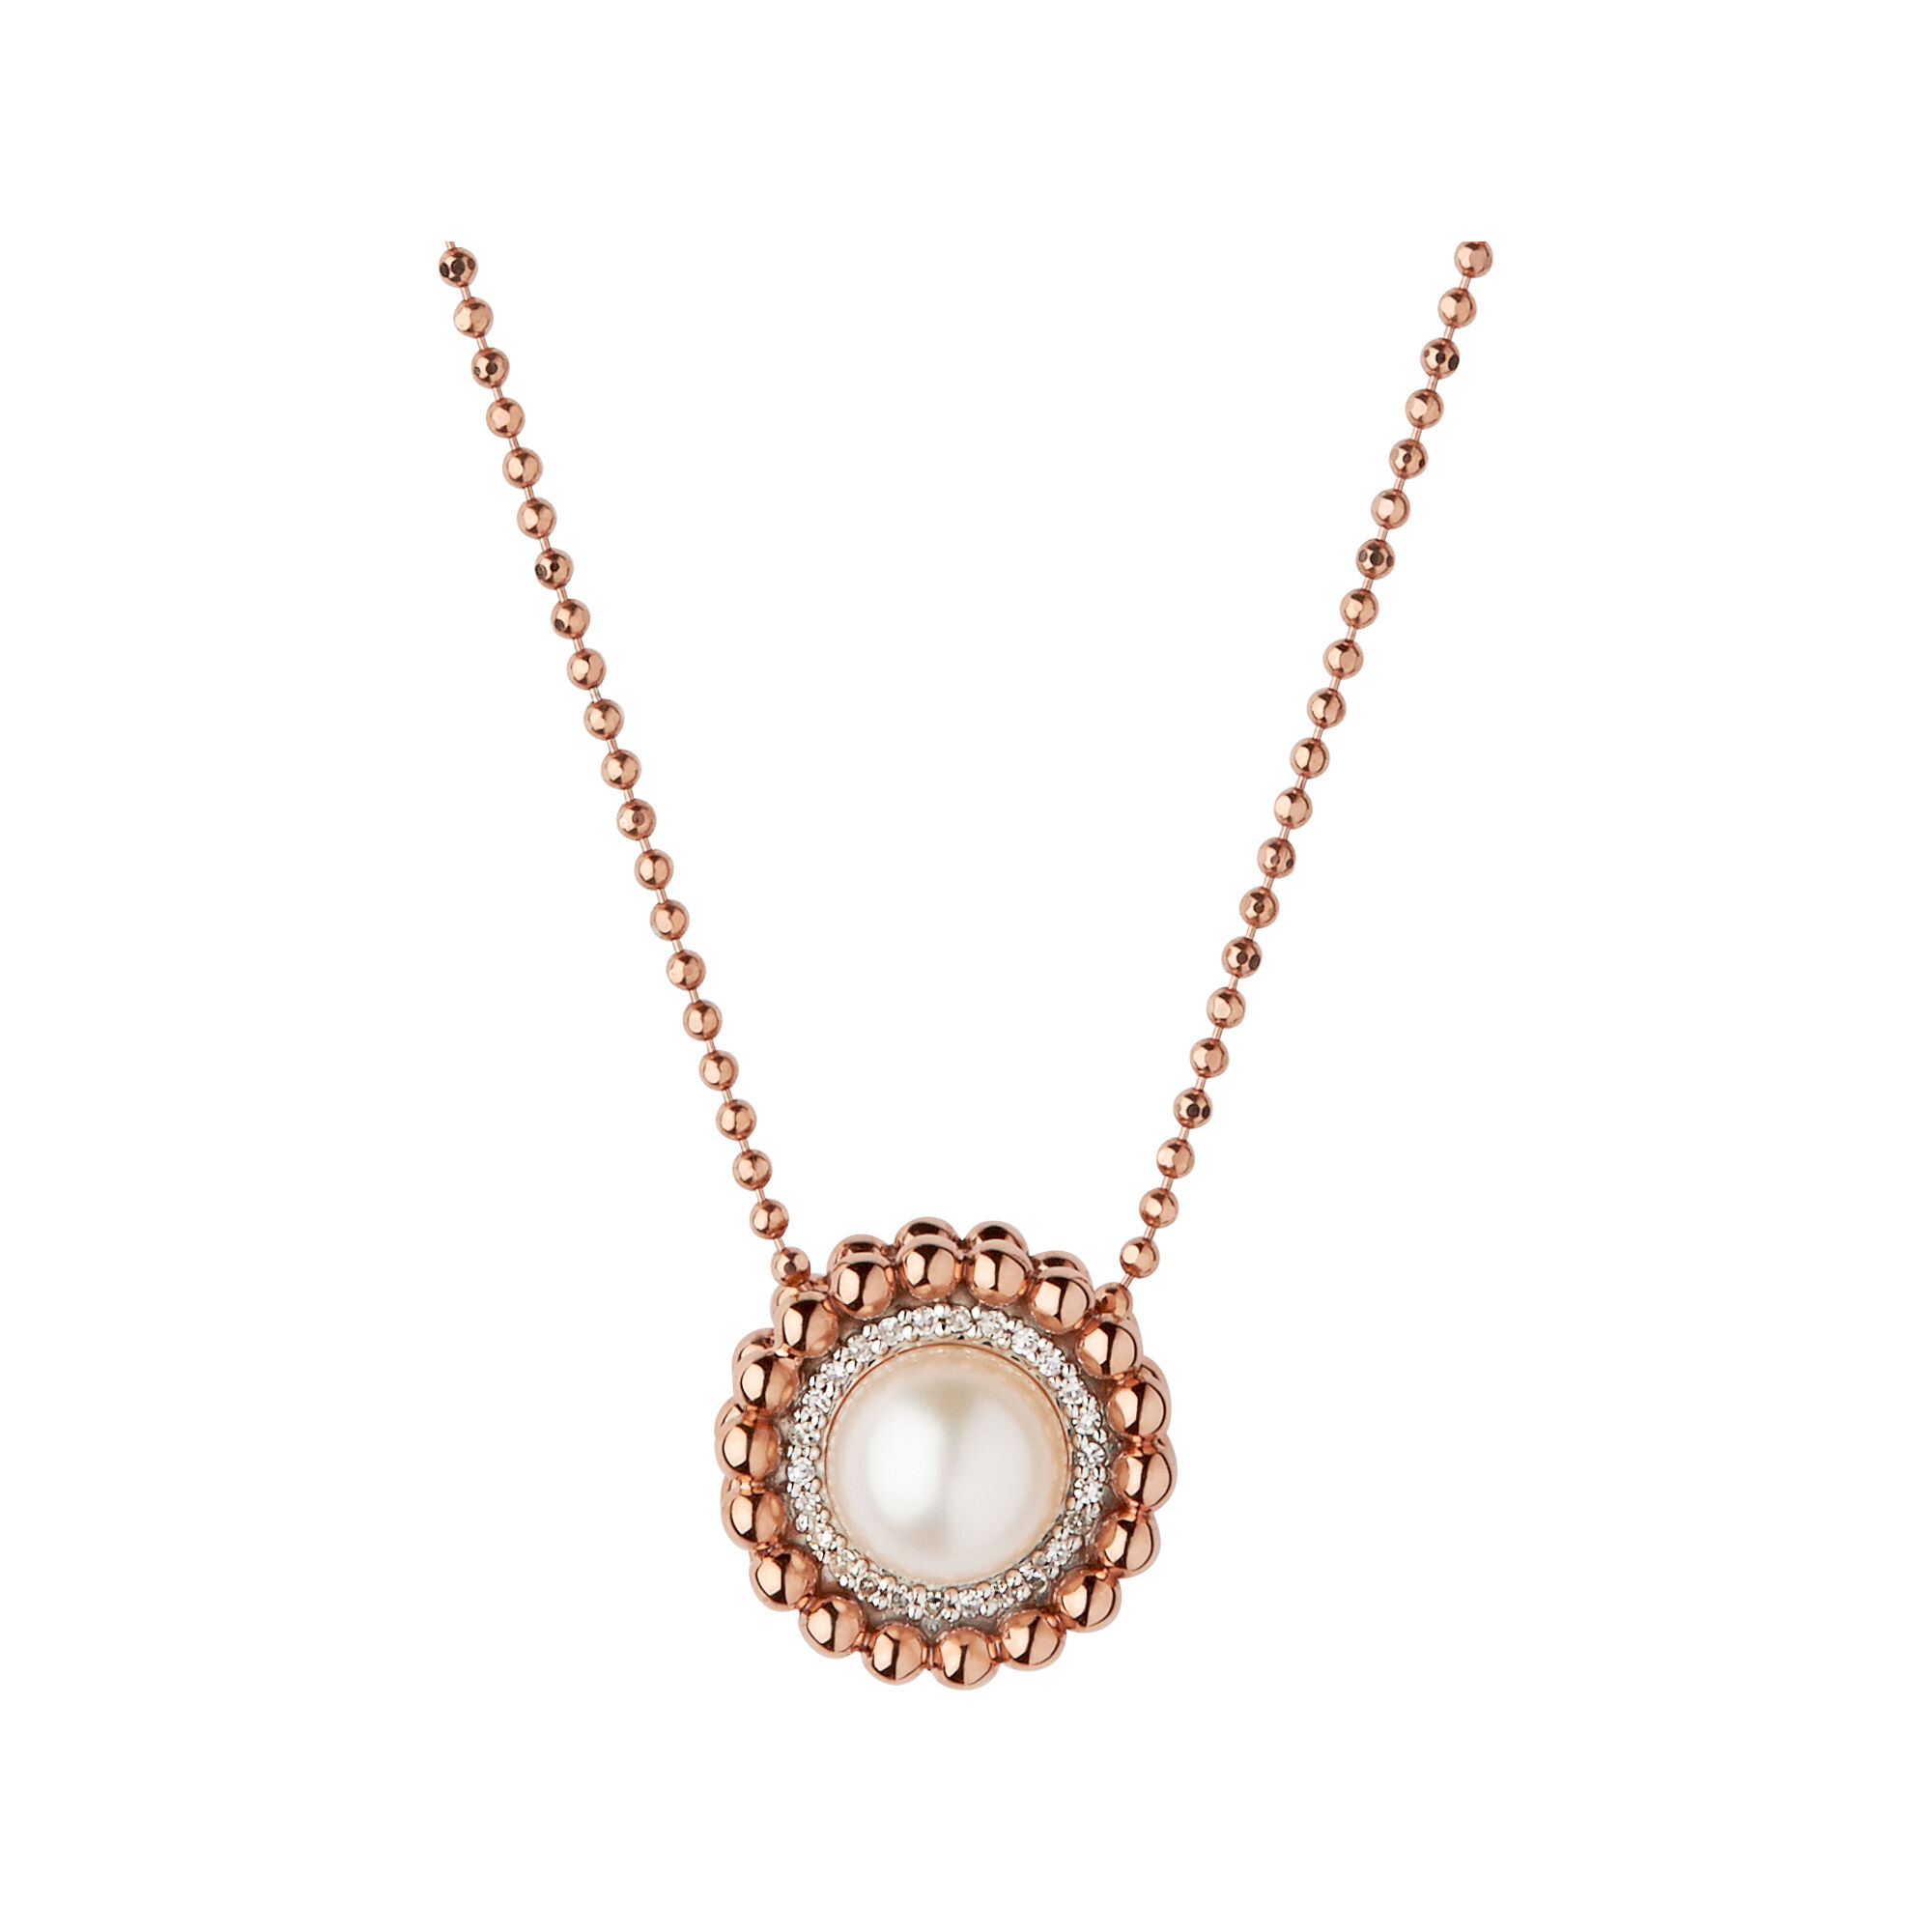 ca diamond and hires amp necklace gold rose effervescence of pearl links london en